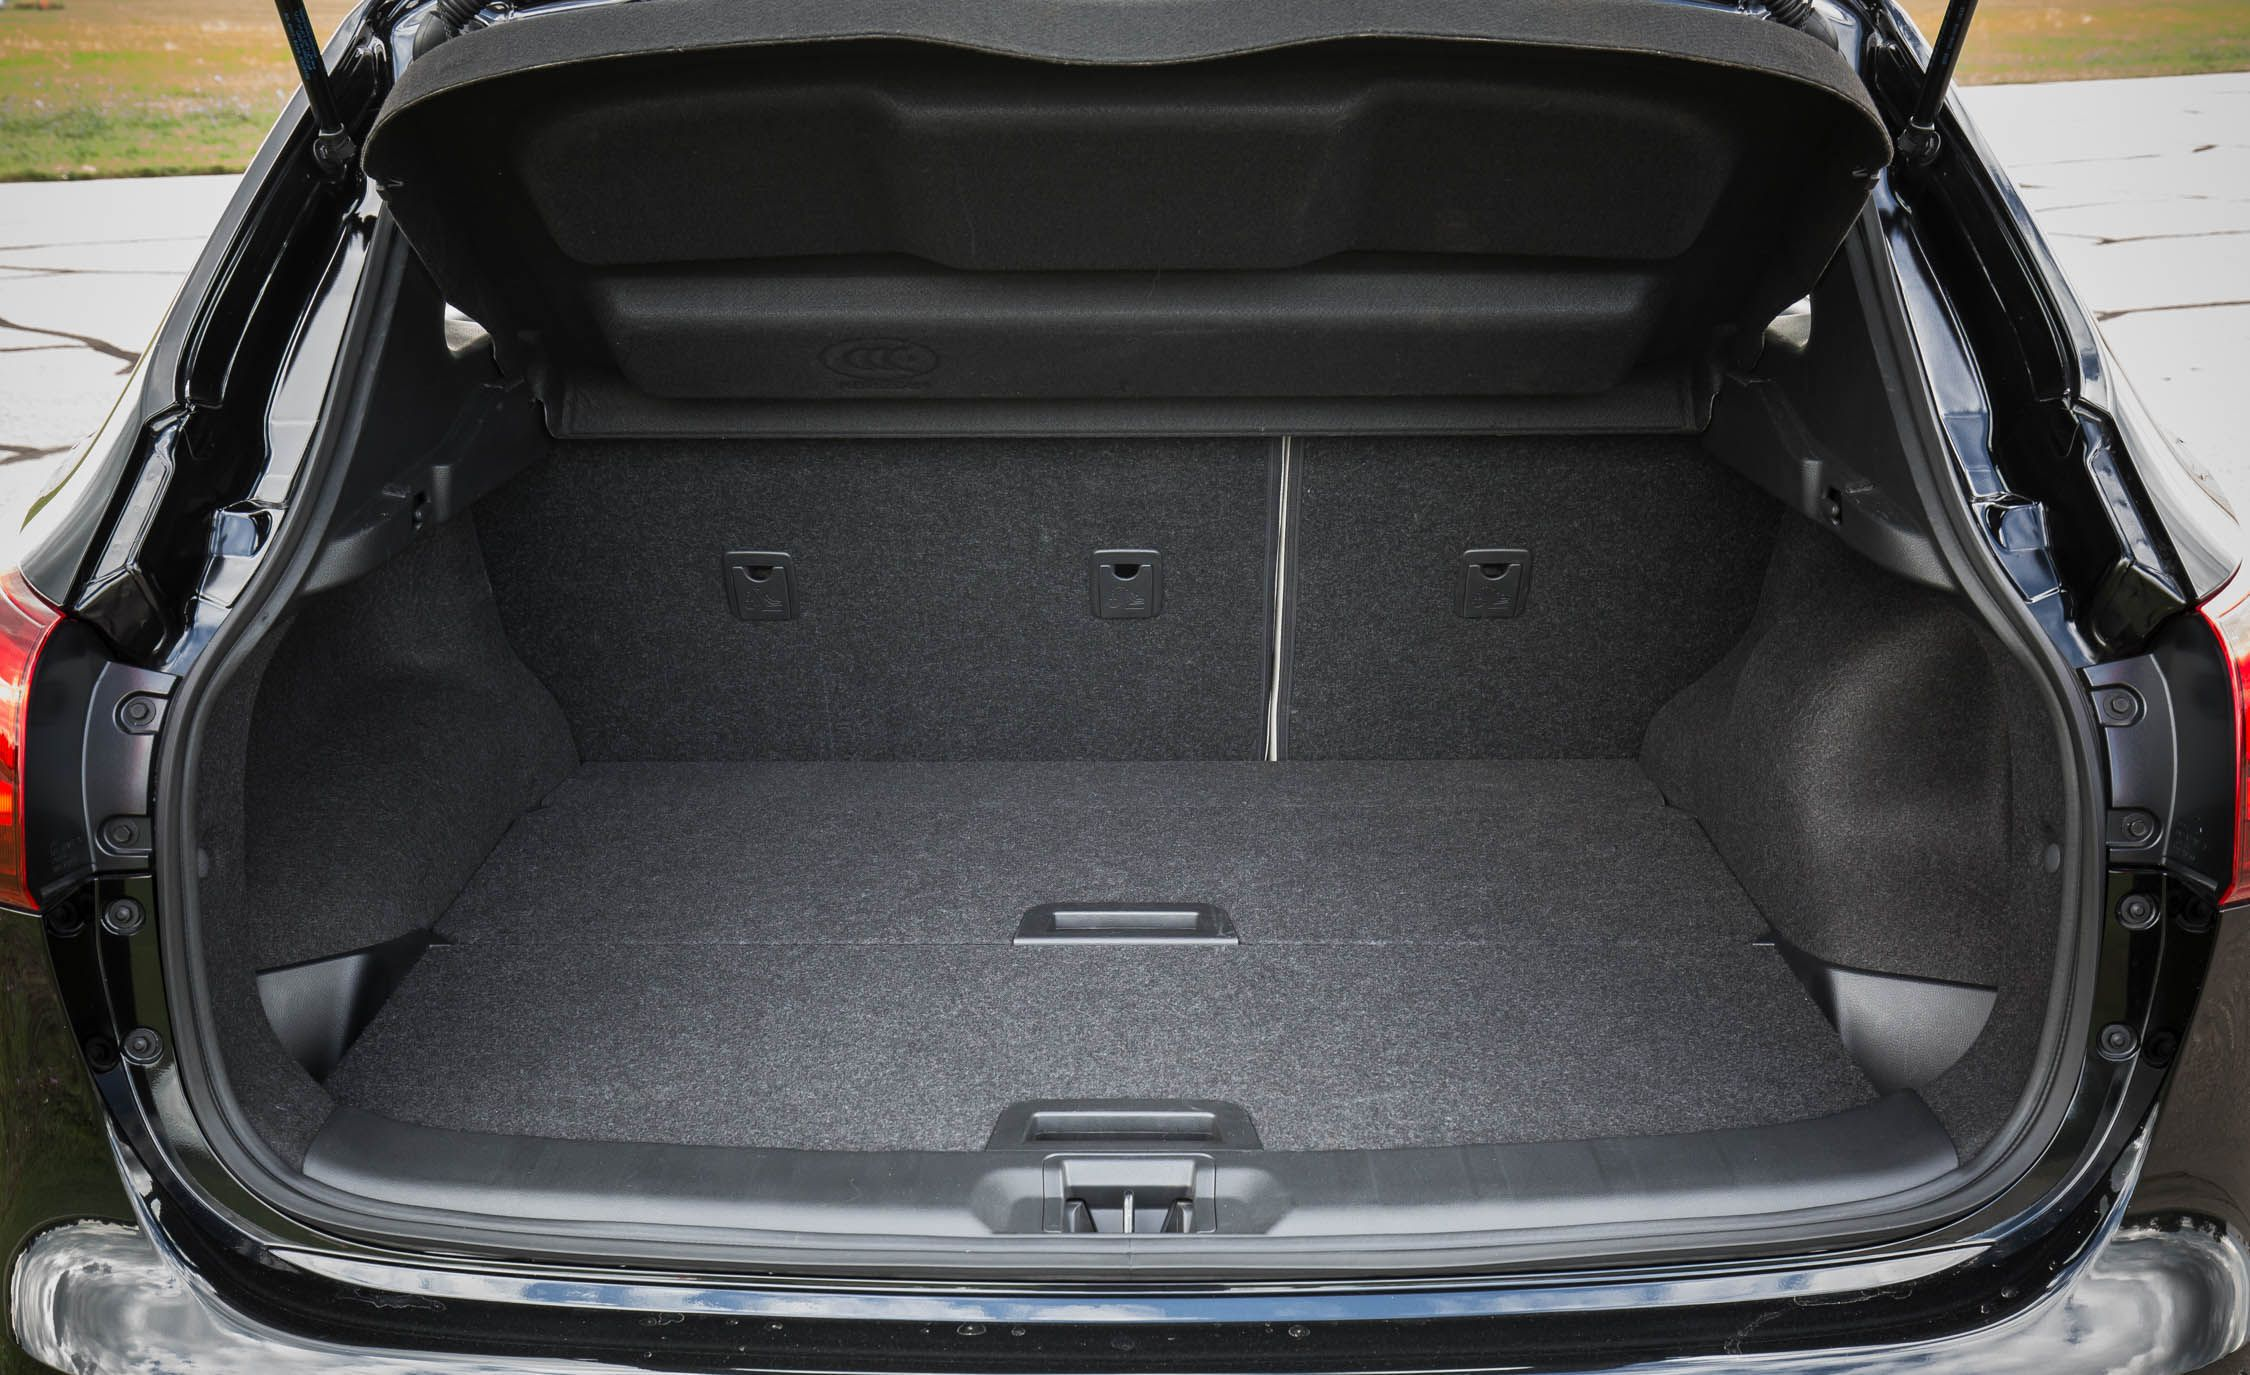 2b9cd4504d The Best Subcompact Crossovers for Hauling Stuff - 2019 Small SUV Cargo  Capacities Ranked